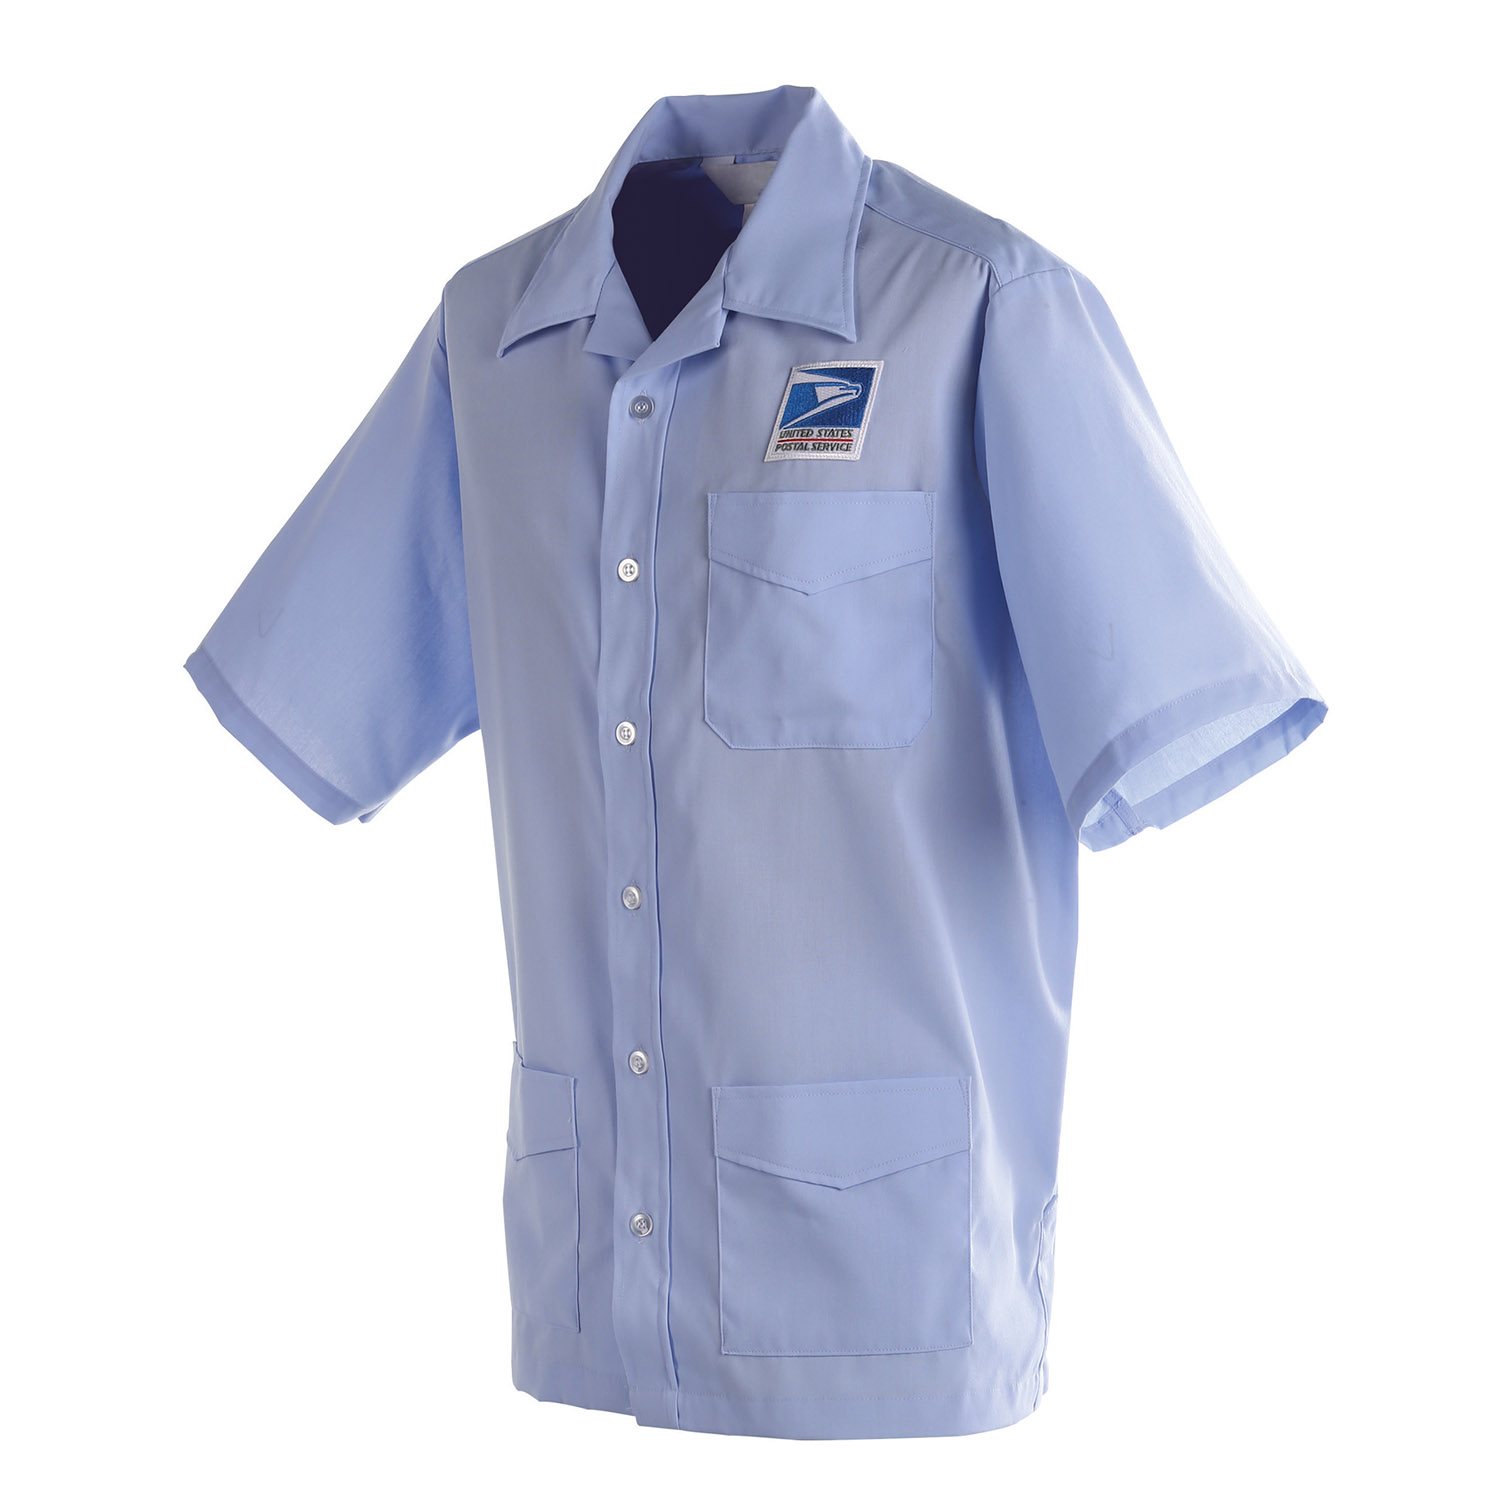 mens usps letter carrier authorized shirt jac